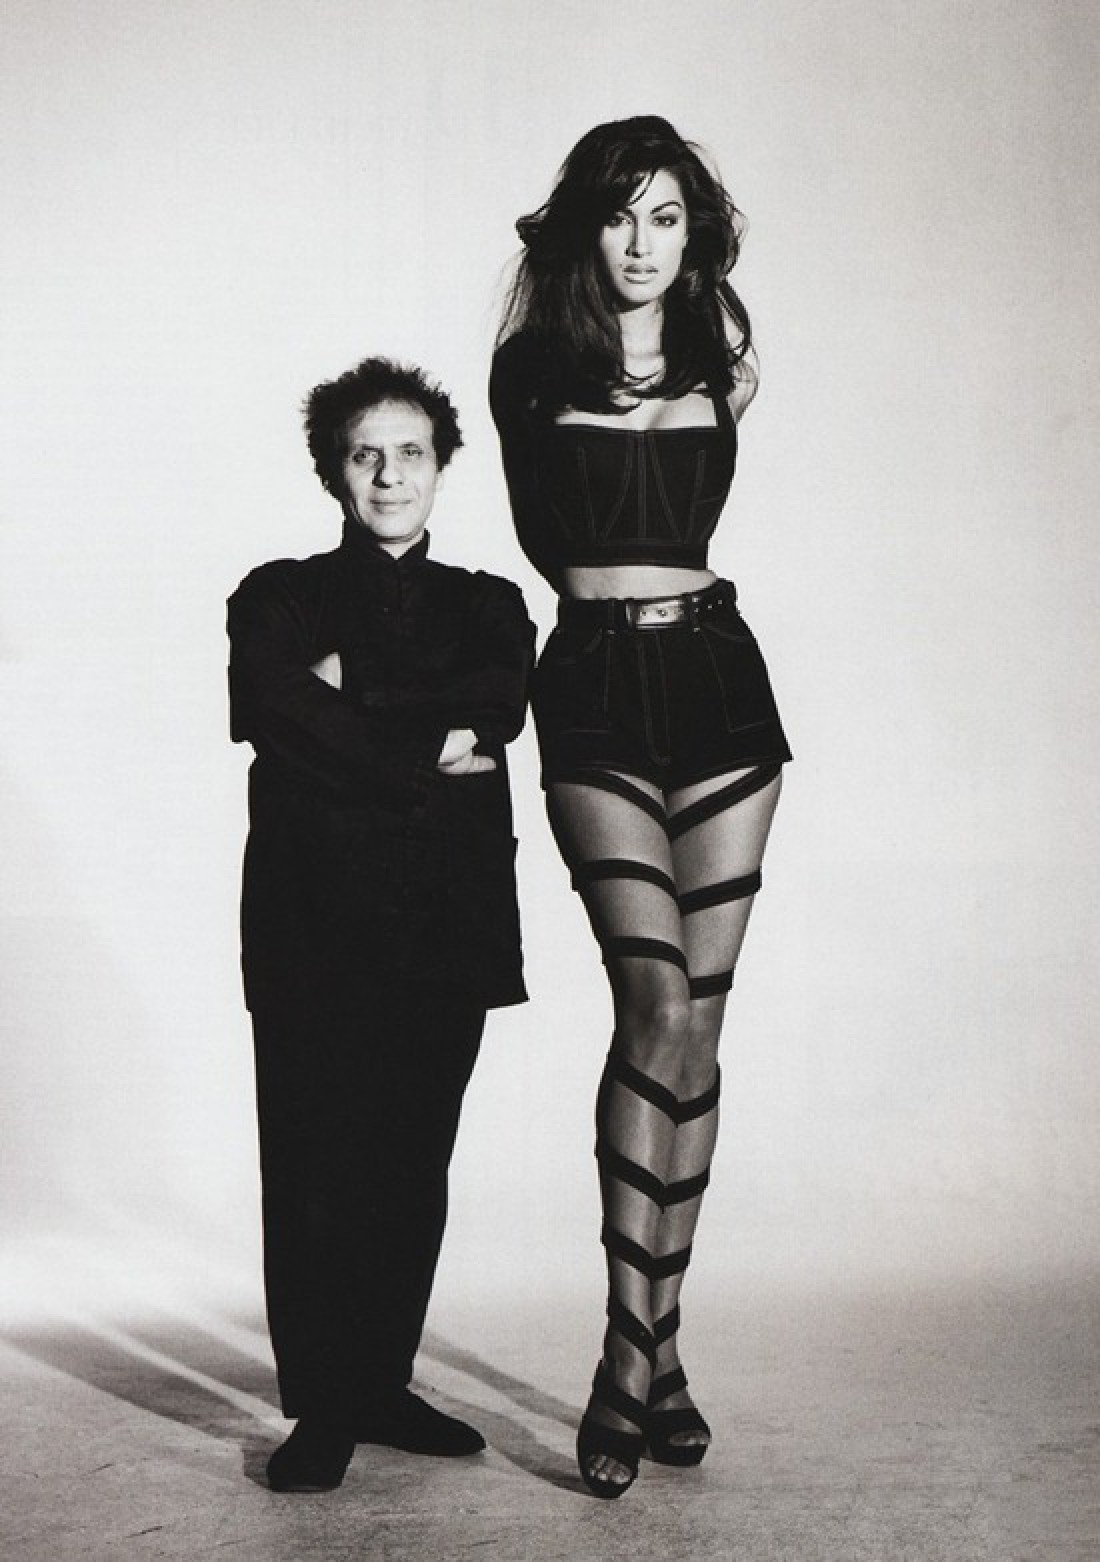 Azzedine Alaïa and Yasmeen Ghauri photographed by Patrick Demarchelier in Vogue, 1991